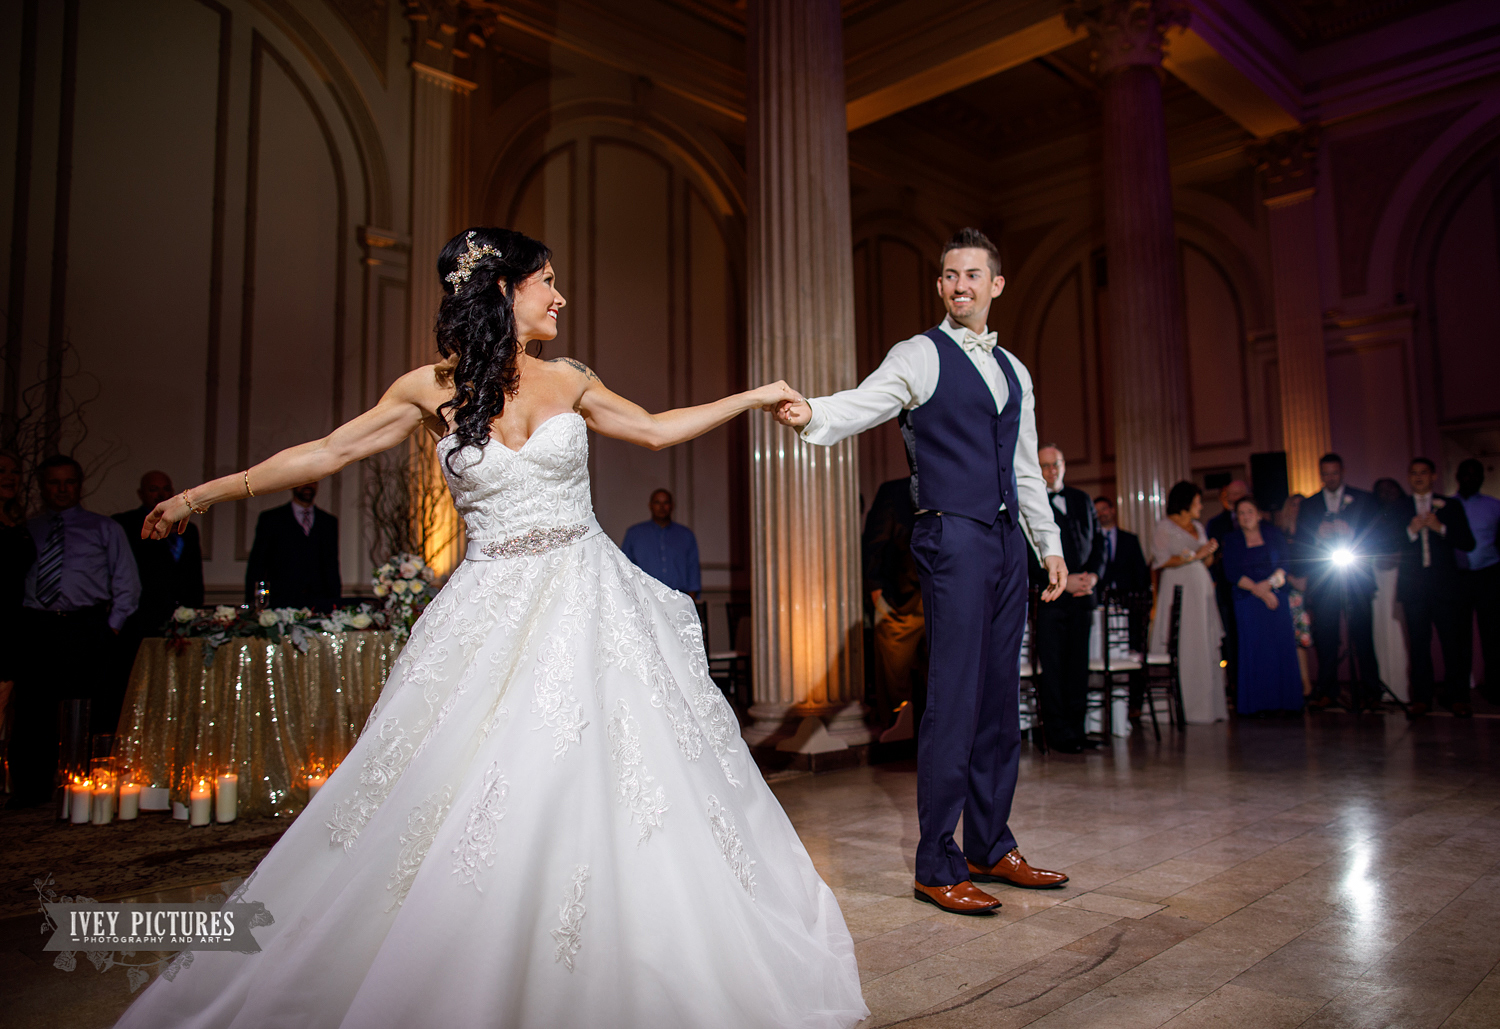 choreographed first dance at wedding